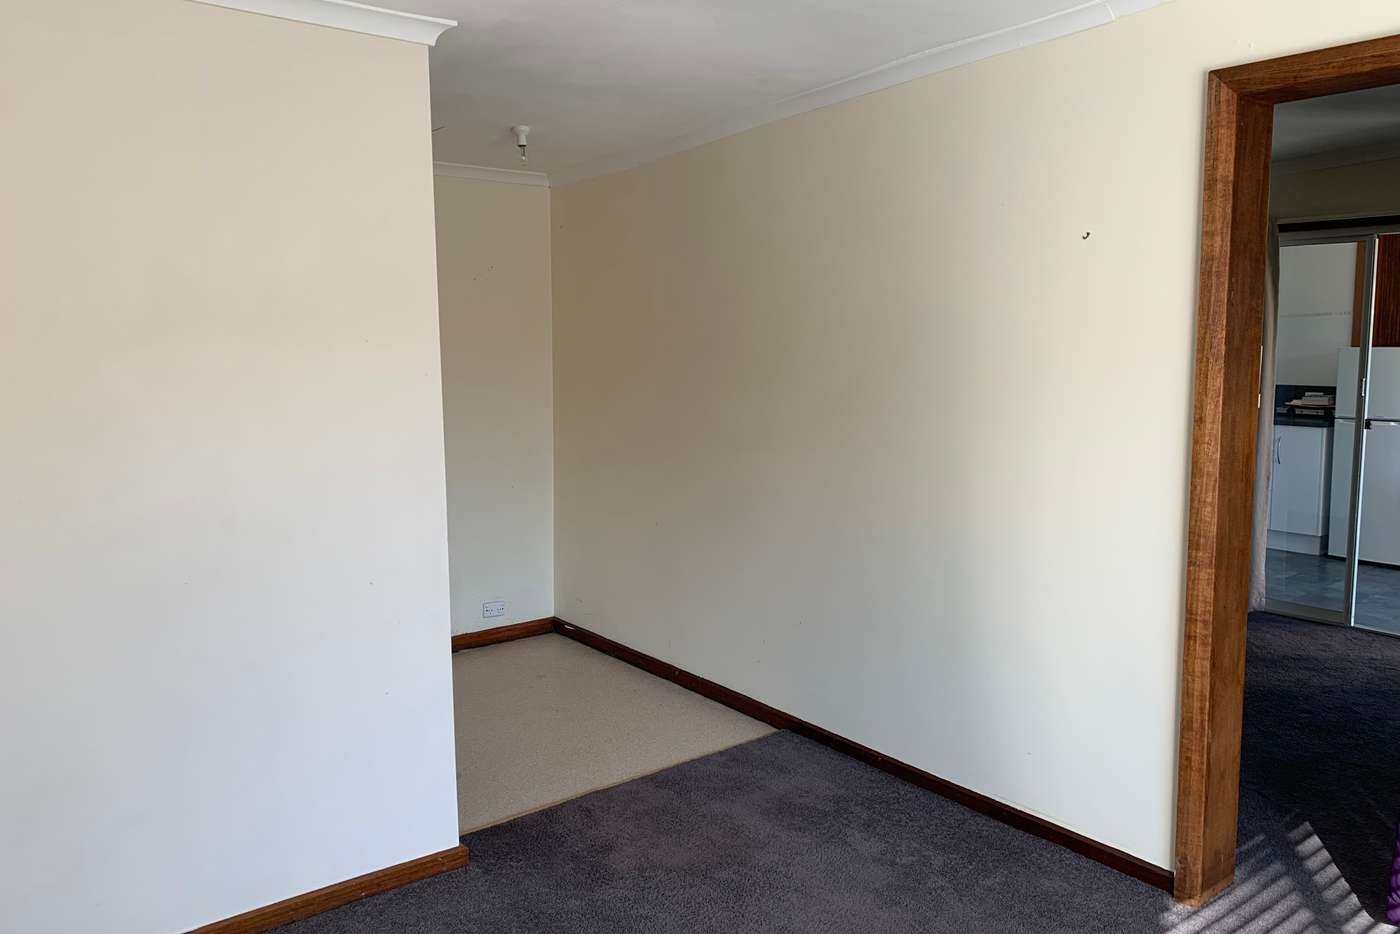 Seventh view of Homely house listing, 2/7 Pershing Street, Mowbray TAS 7248